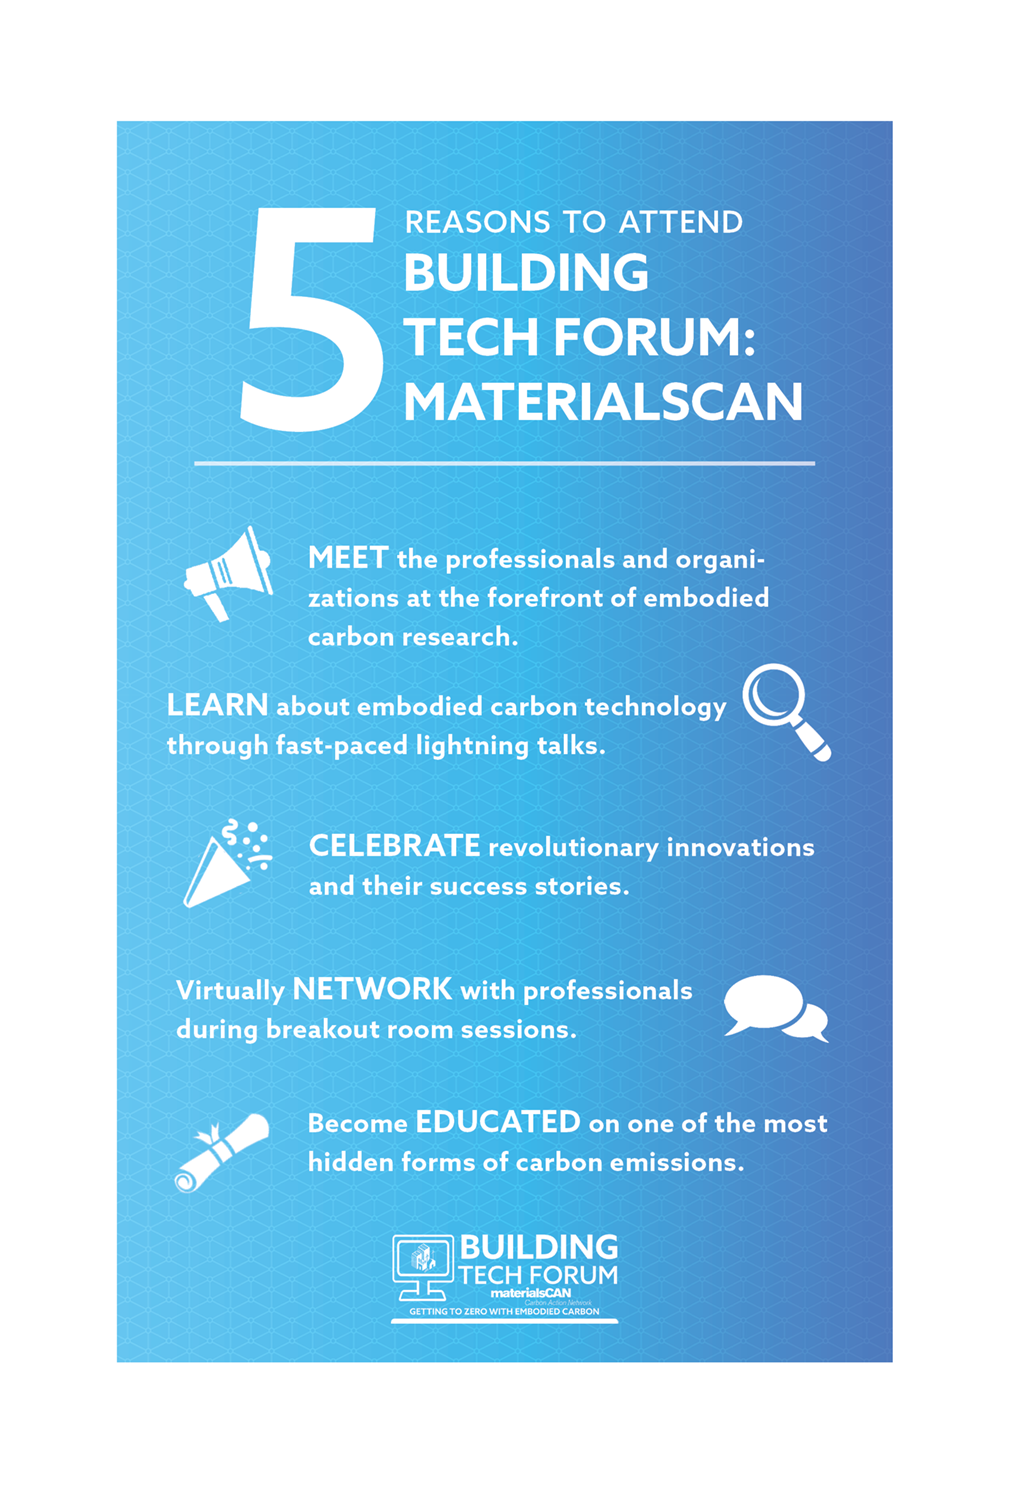 5 reasons to attend Building Tech Forum materialsCAN: 1) MEET the professionals and organizations at the forefront of embodied carbon research. 2) LEARN about embodied carbon technology through fast-paced lightning talks. 3) CELEBRATE revolutionary innovations and their success stories. 4) Virtually NETWORK with professionals during breakout room sessions. 5) Become EDUCATED on one of the most hidden forms of carbon emissions.